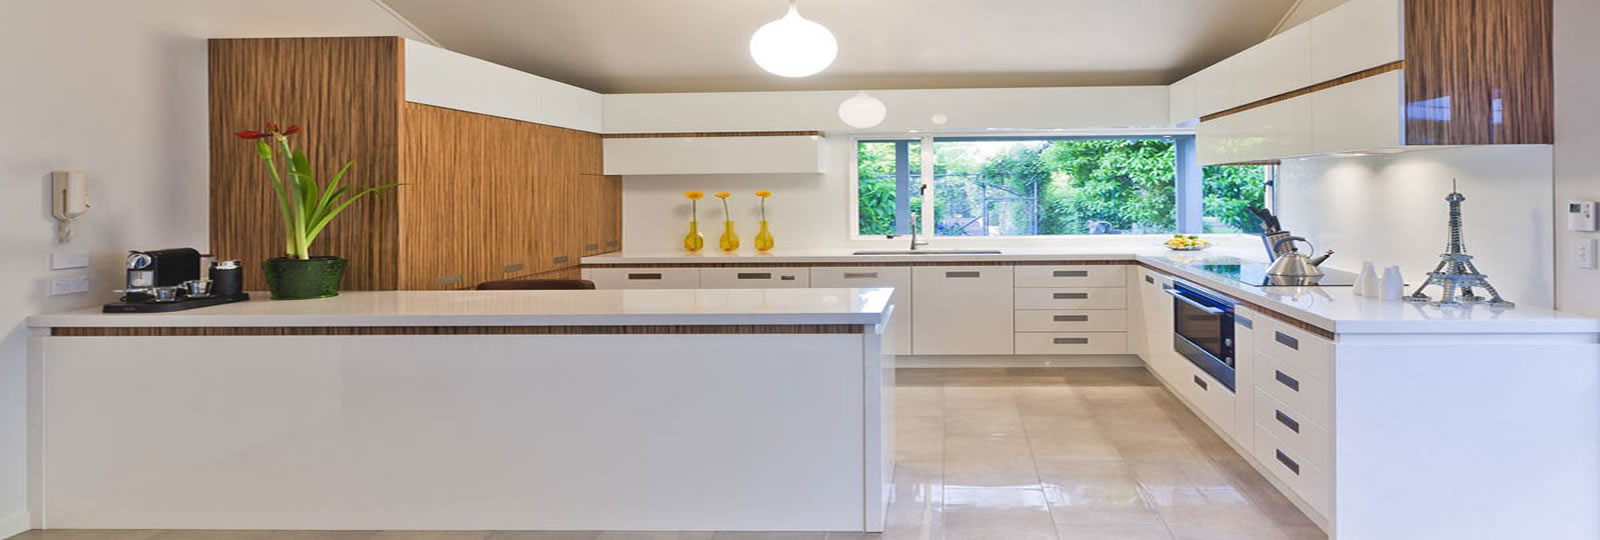 Cheap Wholesale Kitchen Renovation Amp Designers Companies